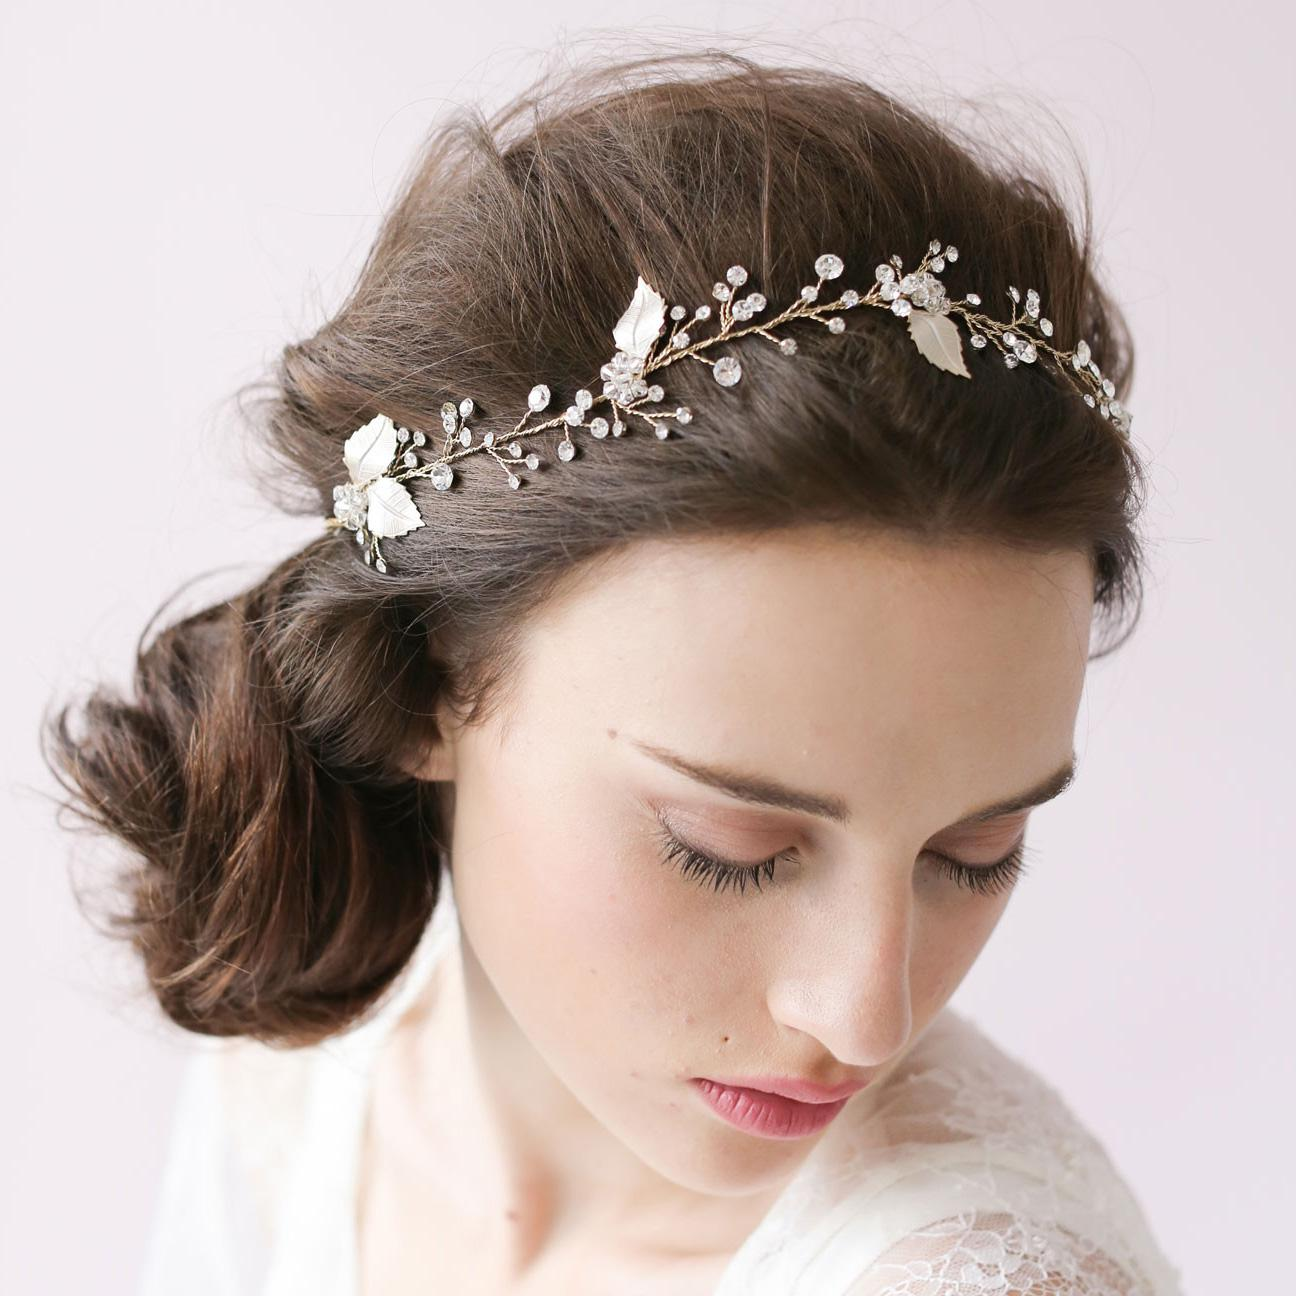 Crystal sparkle hair vine petals blossom wedding headband bride accessories hair accessories vintage bridal combs rhinestone hair adornments silver hair